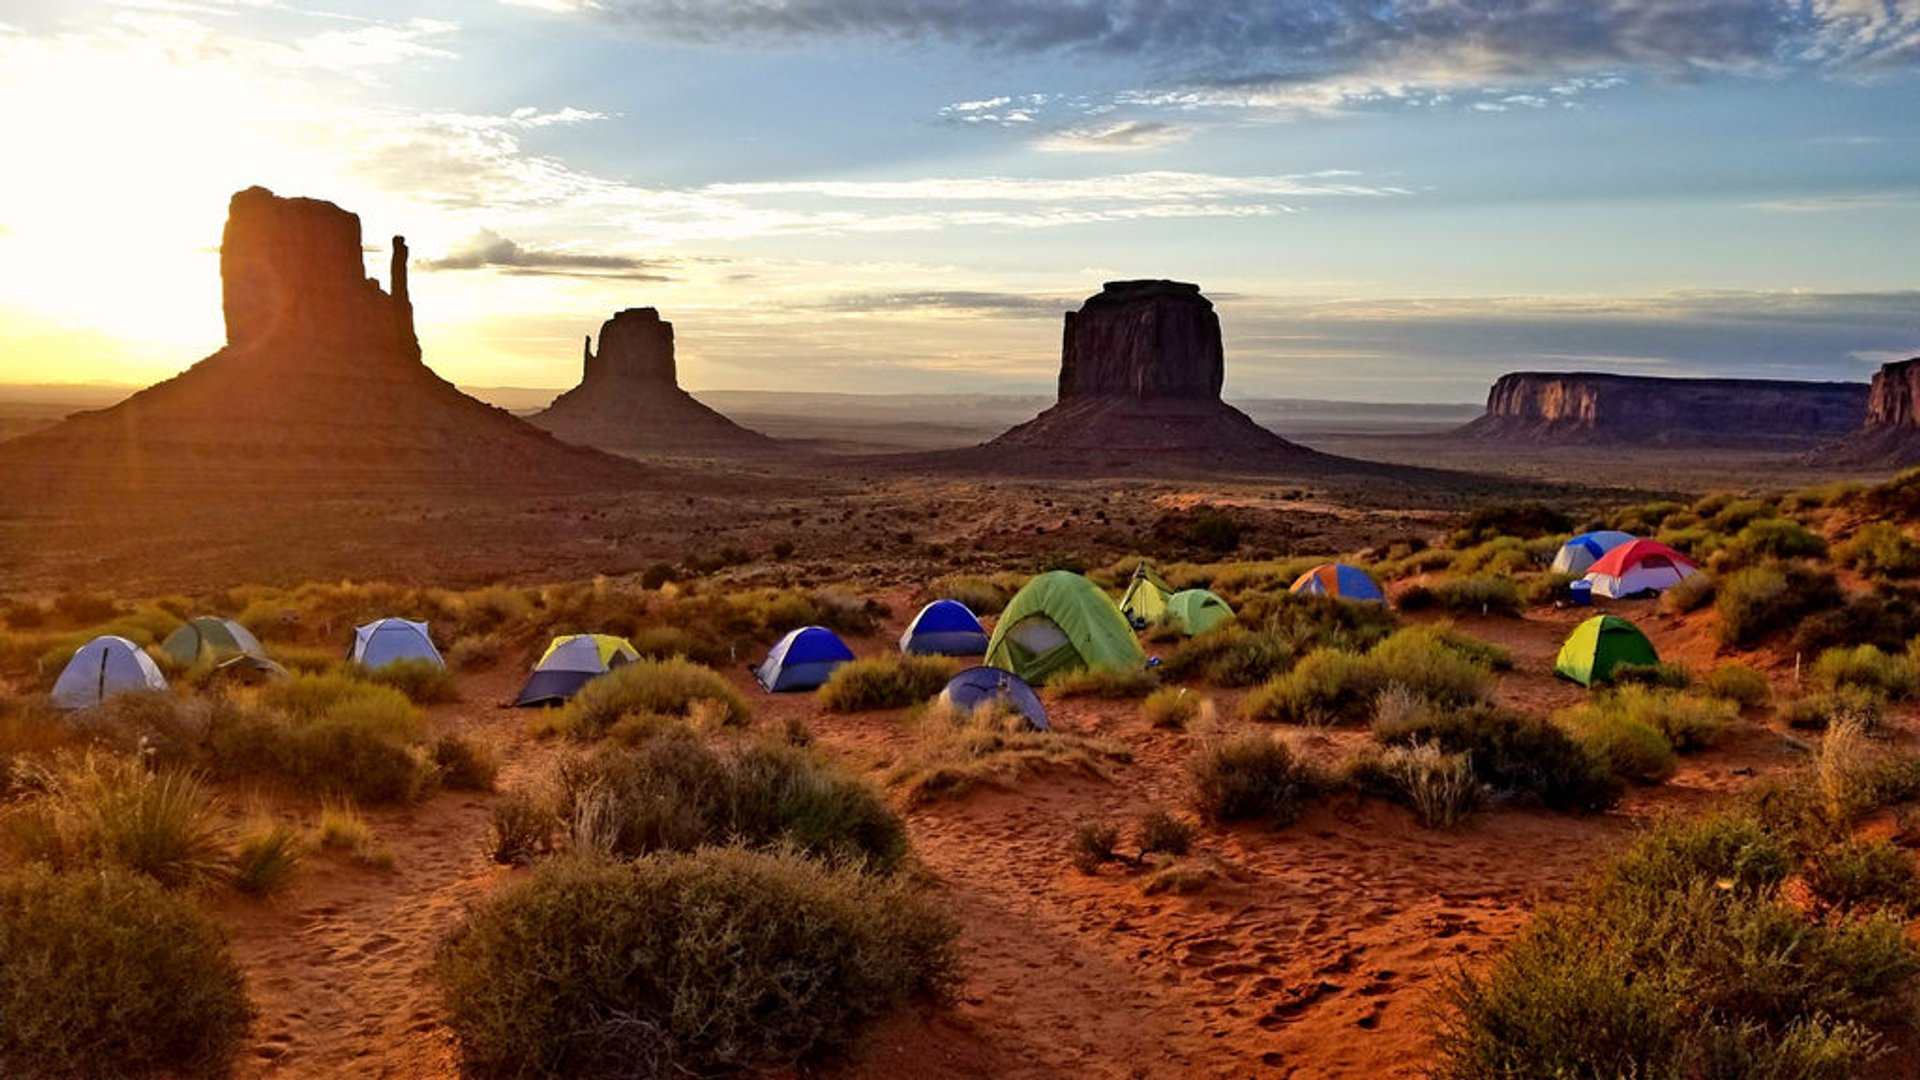 Campground in Monument Valley 2019